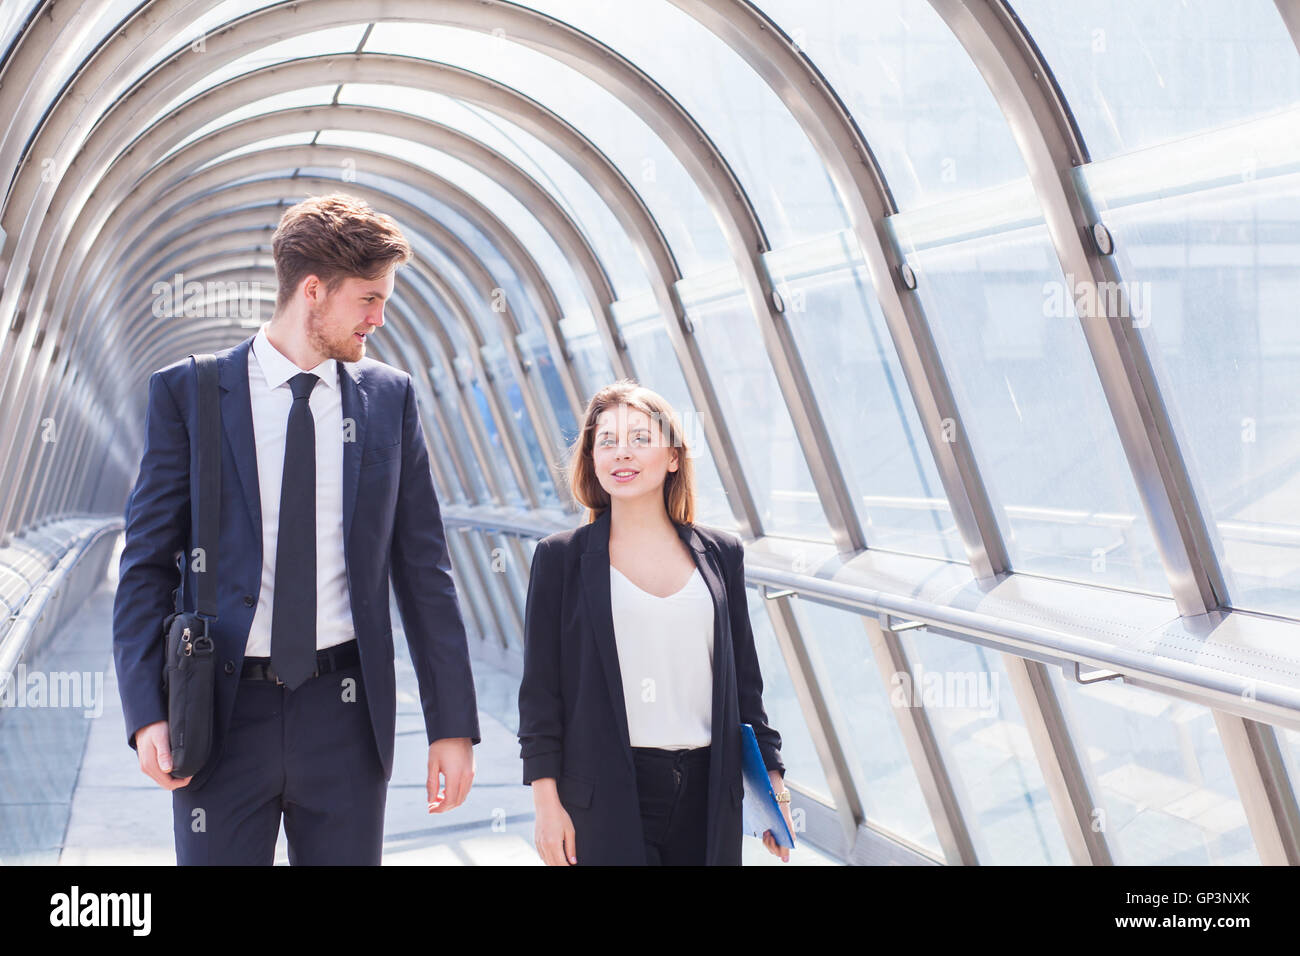 Business people walking in office corridor intérieur Photo Stock